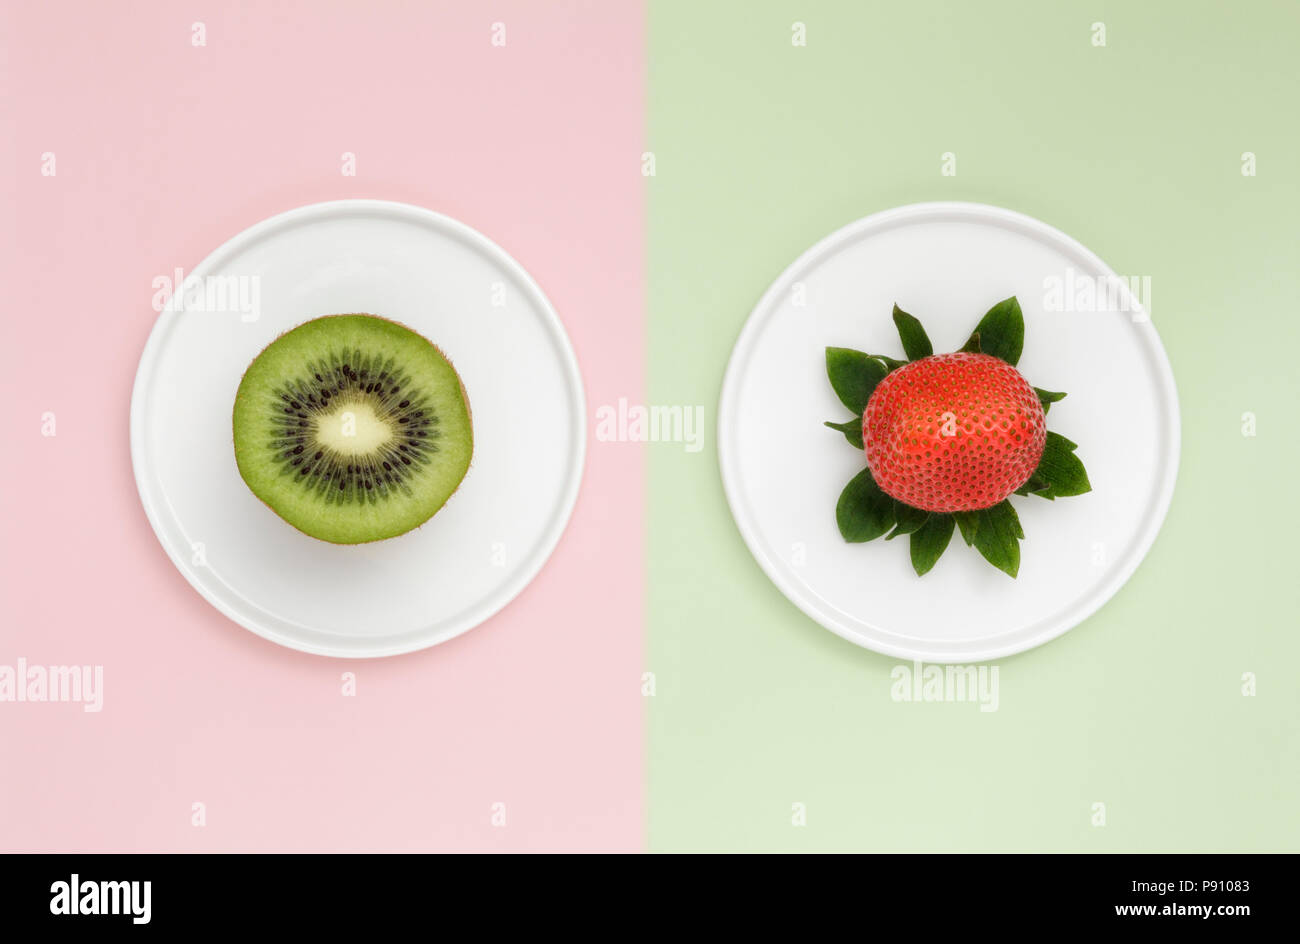 One Kiwi and one Strawberry on duo color background - Stock Image